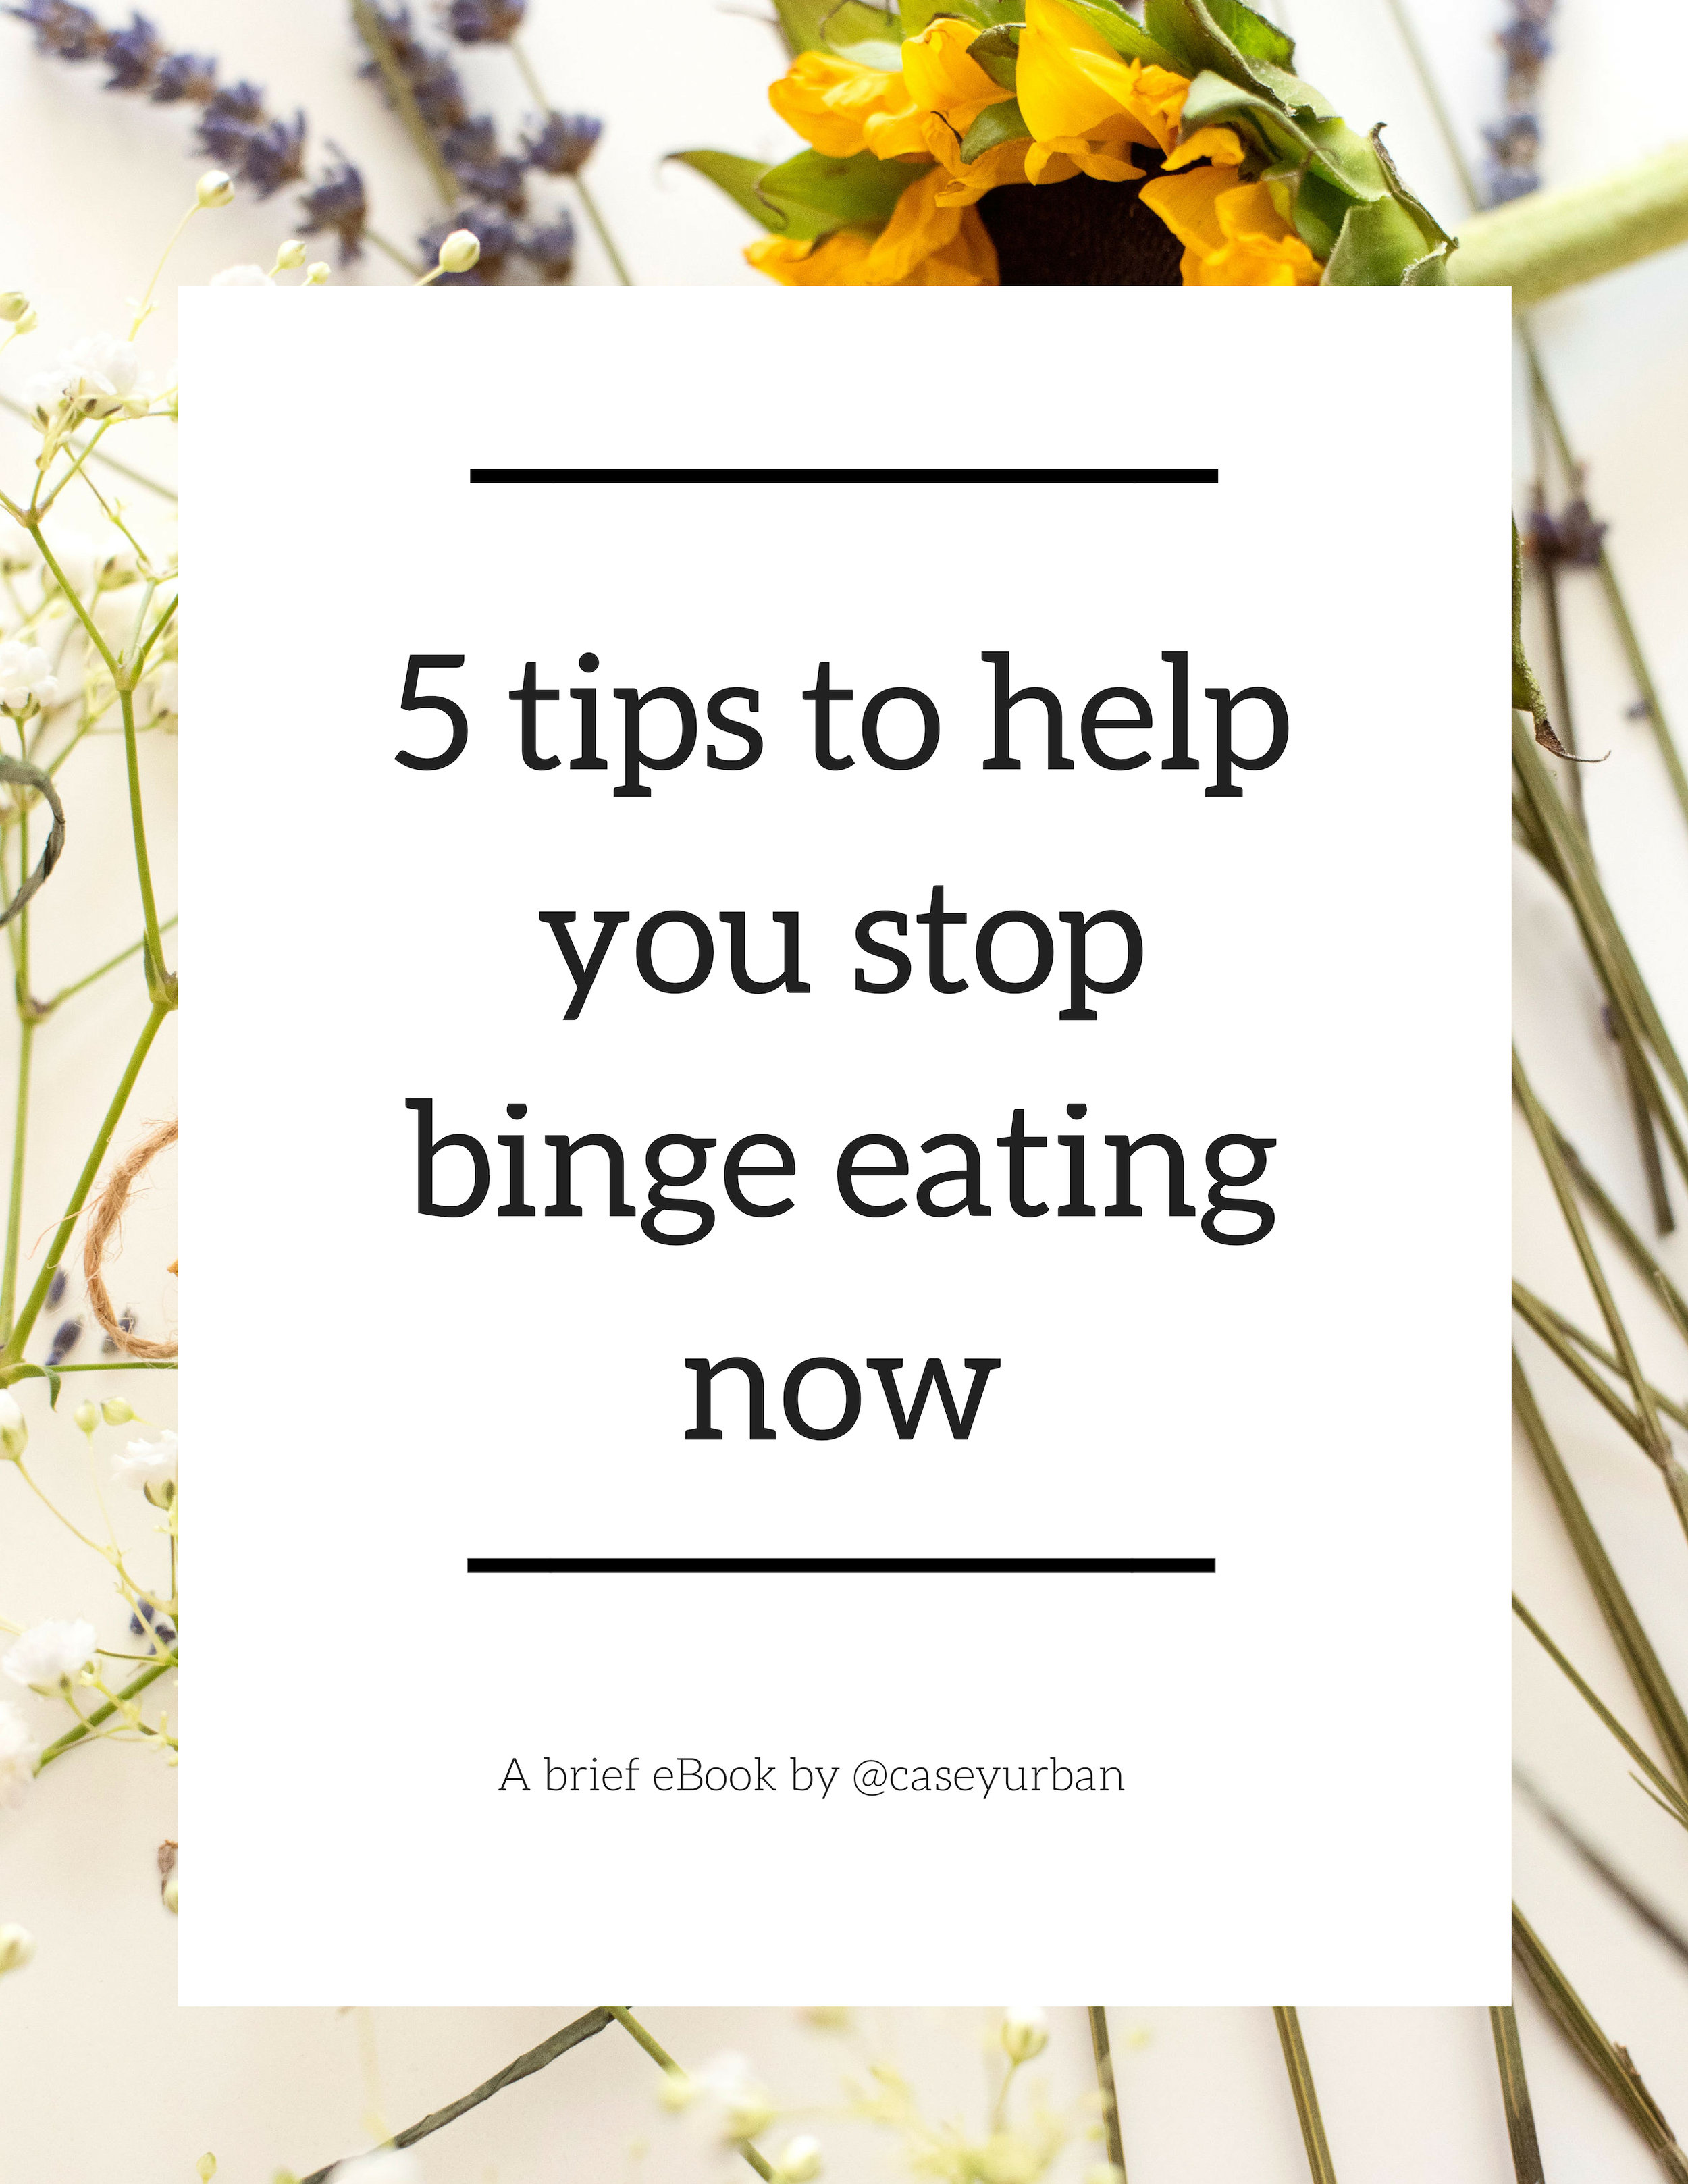 5thingstohelpyoustopbingeeatingnow.jpg